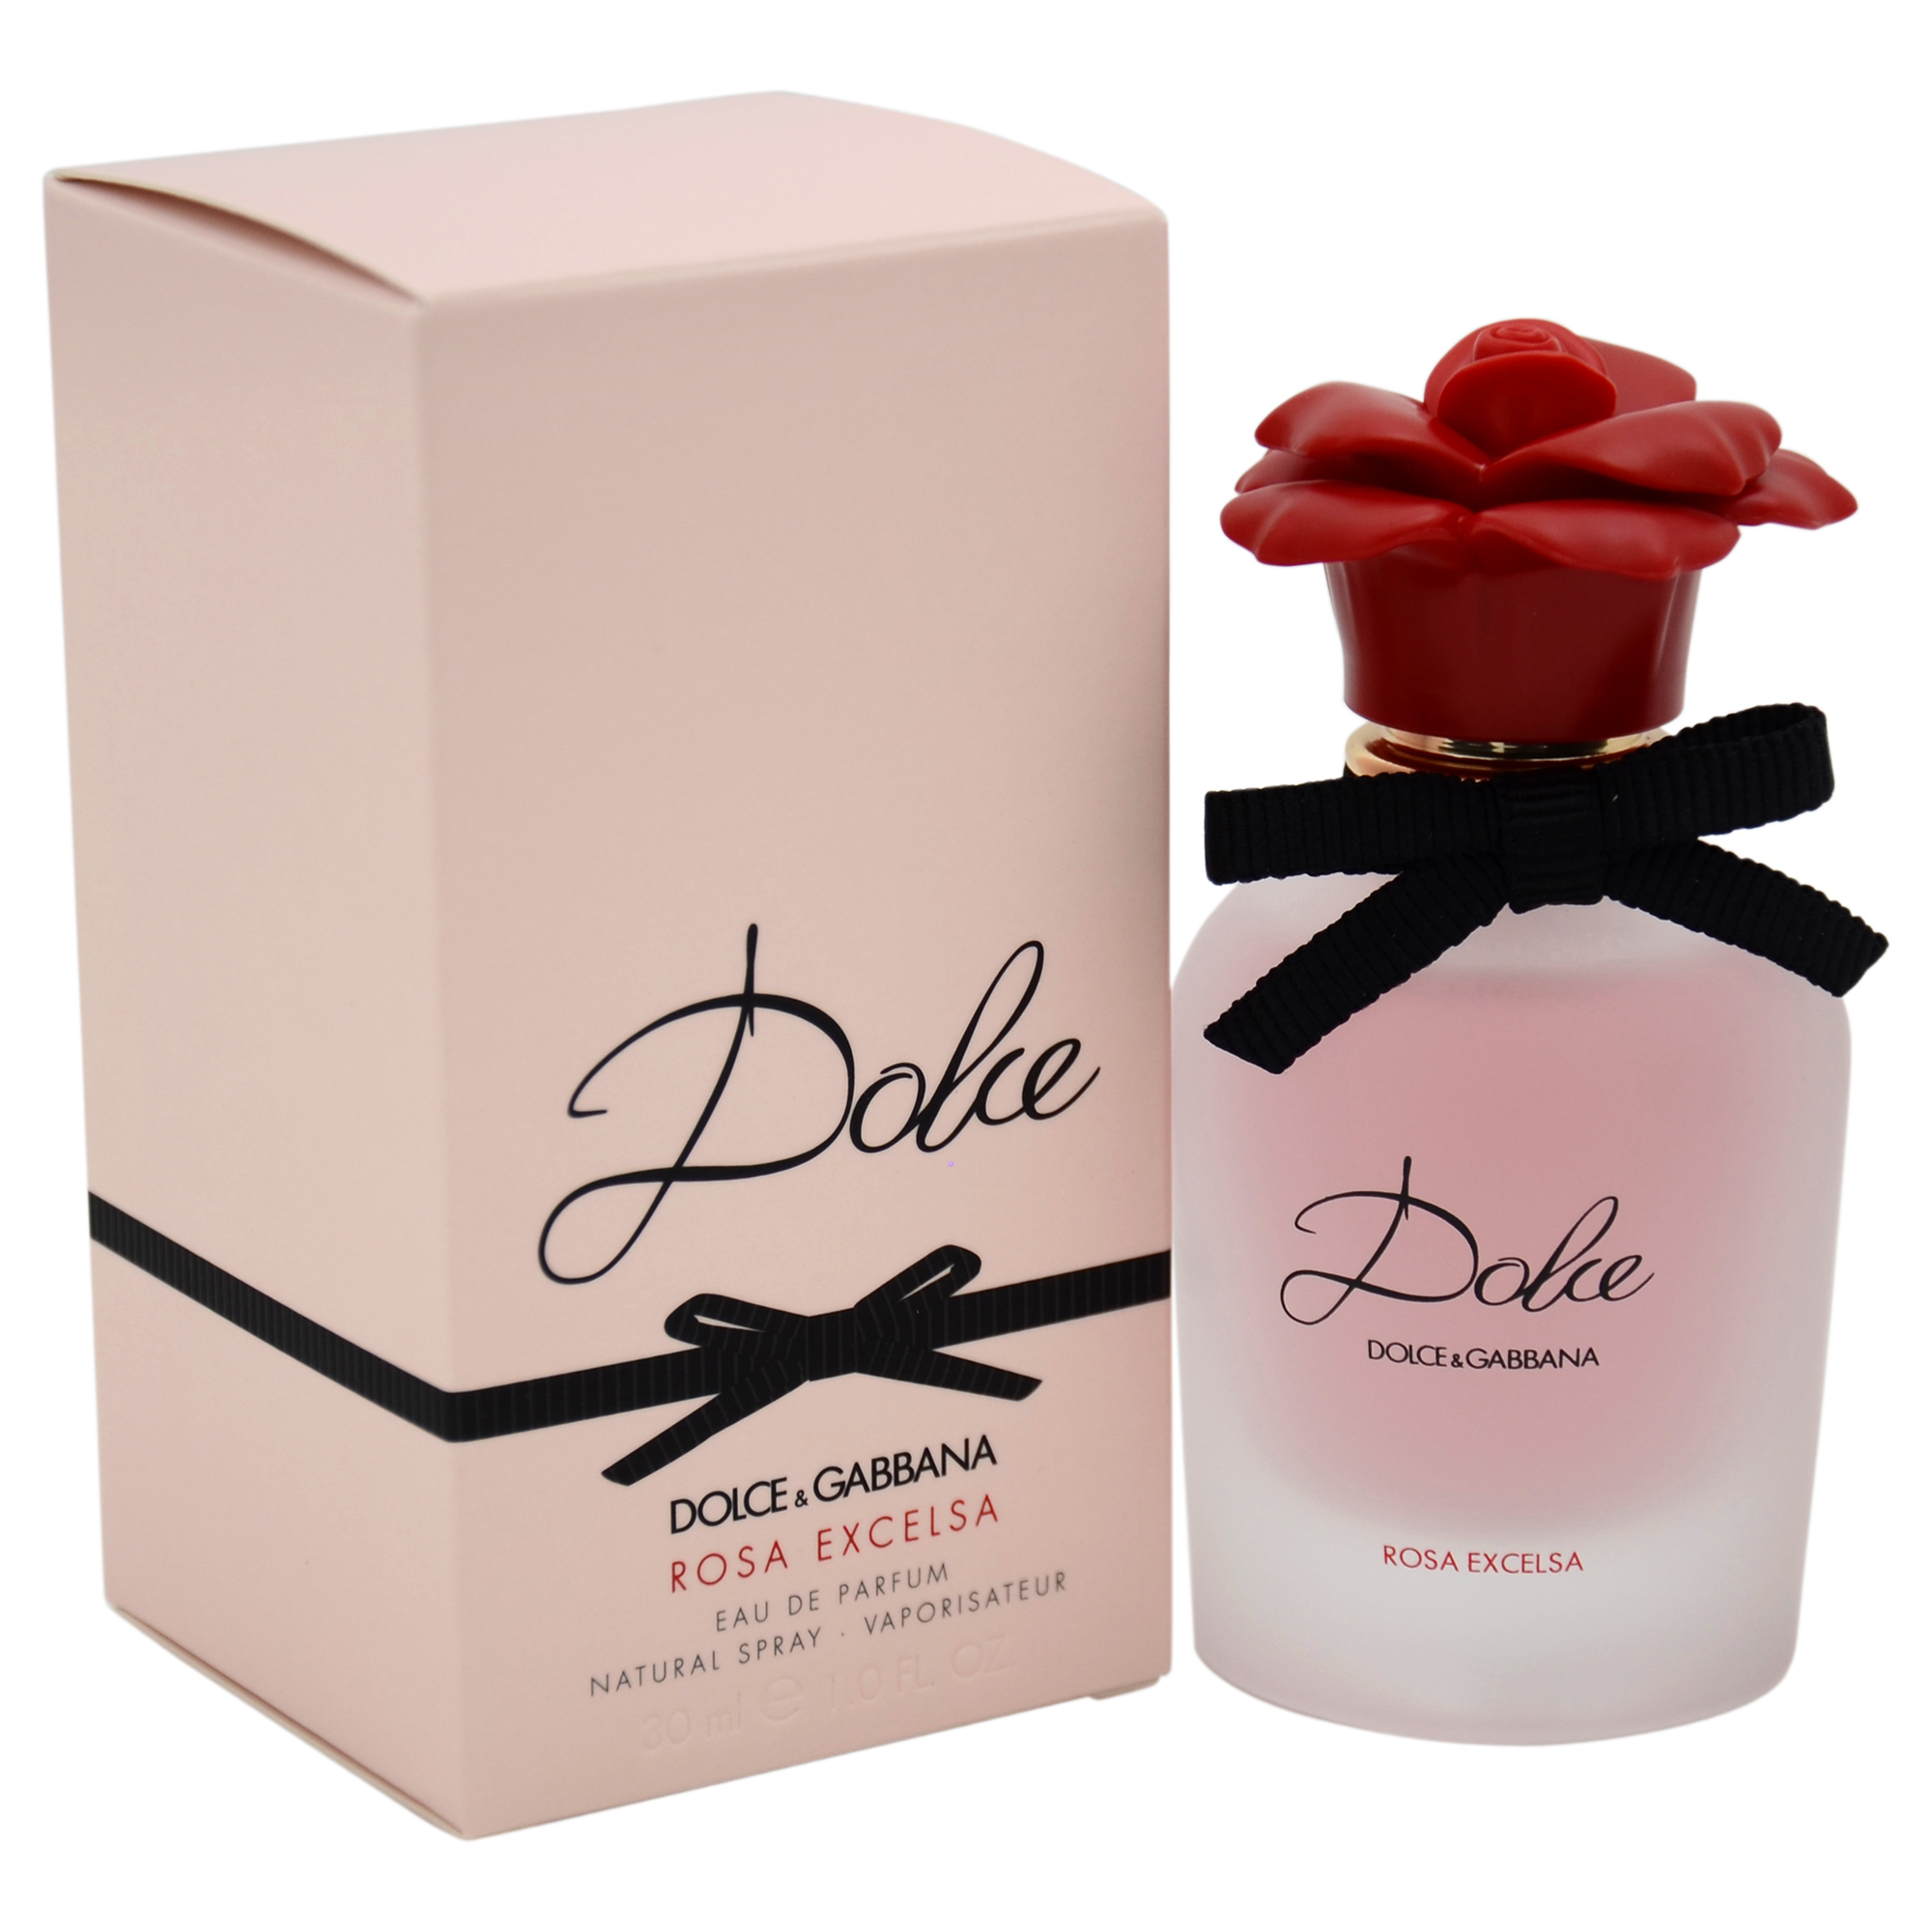 Dolce Gabbana Dolce Rosa Excelsa: New Fragrance from the Dolce Family photo